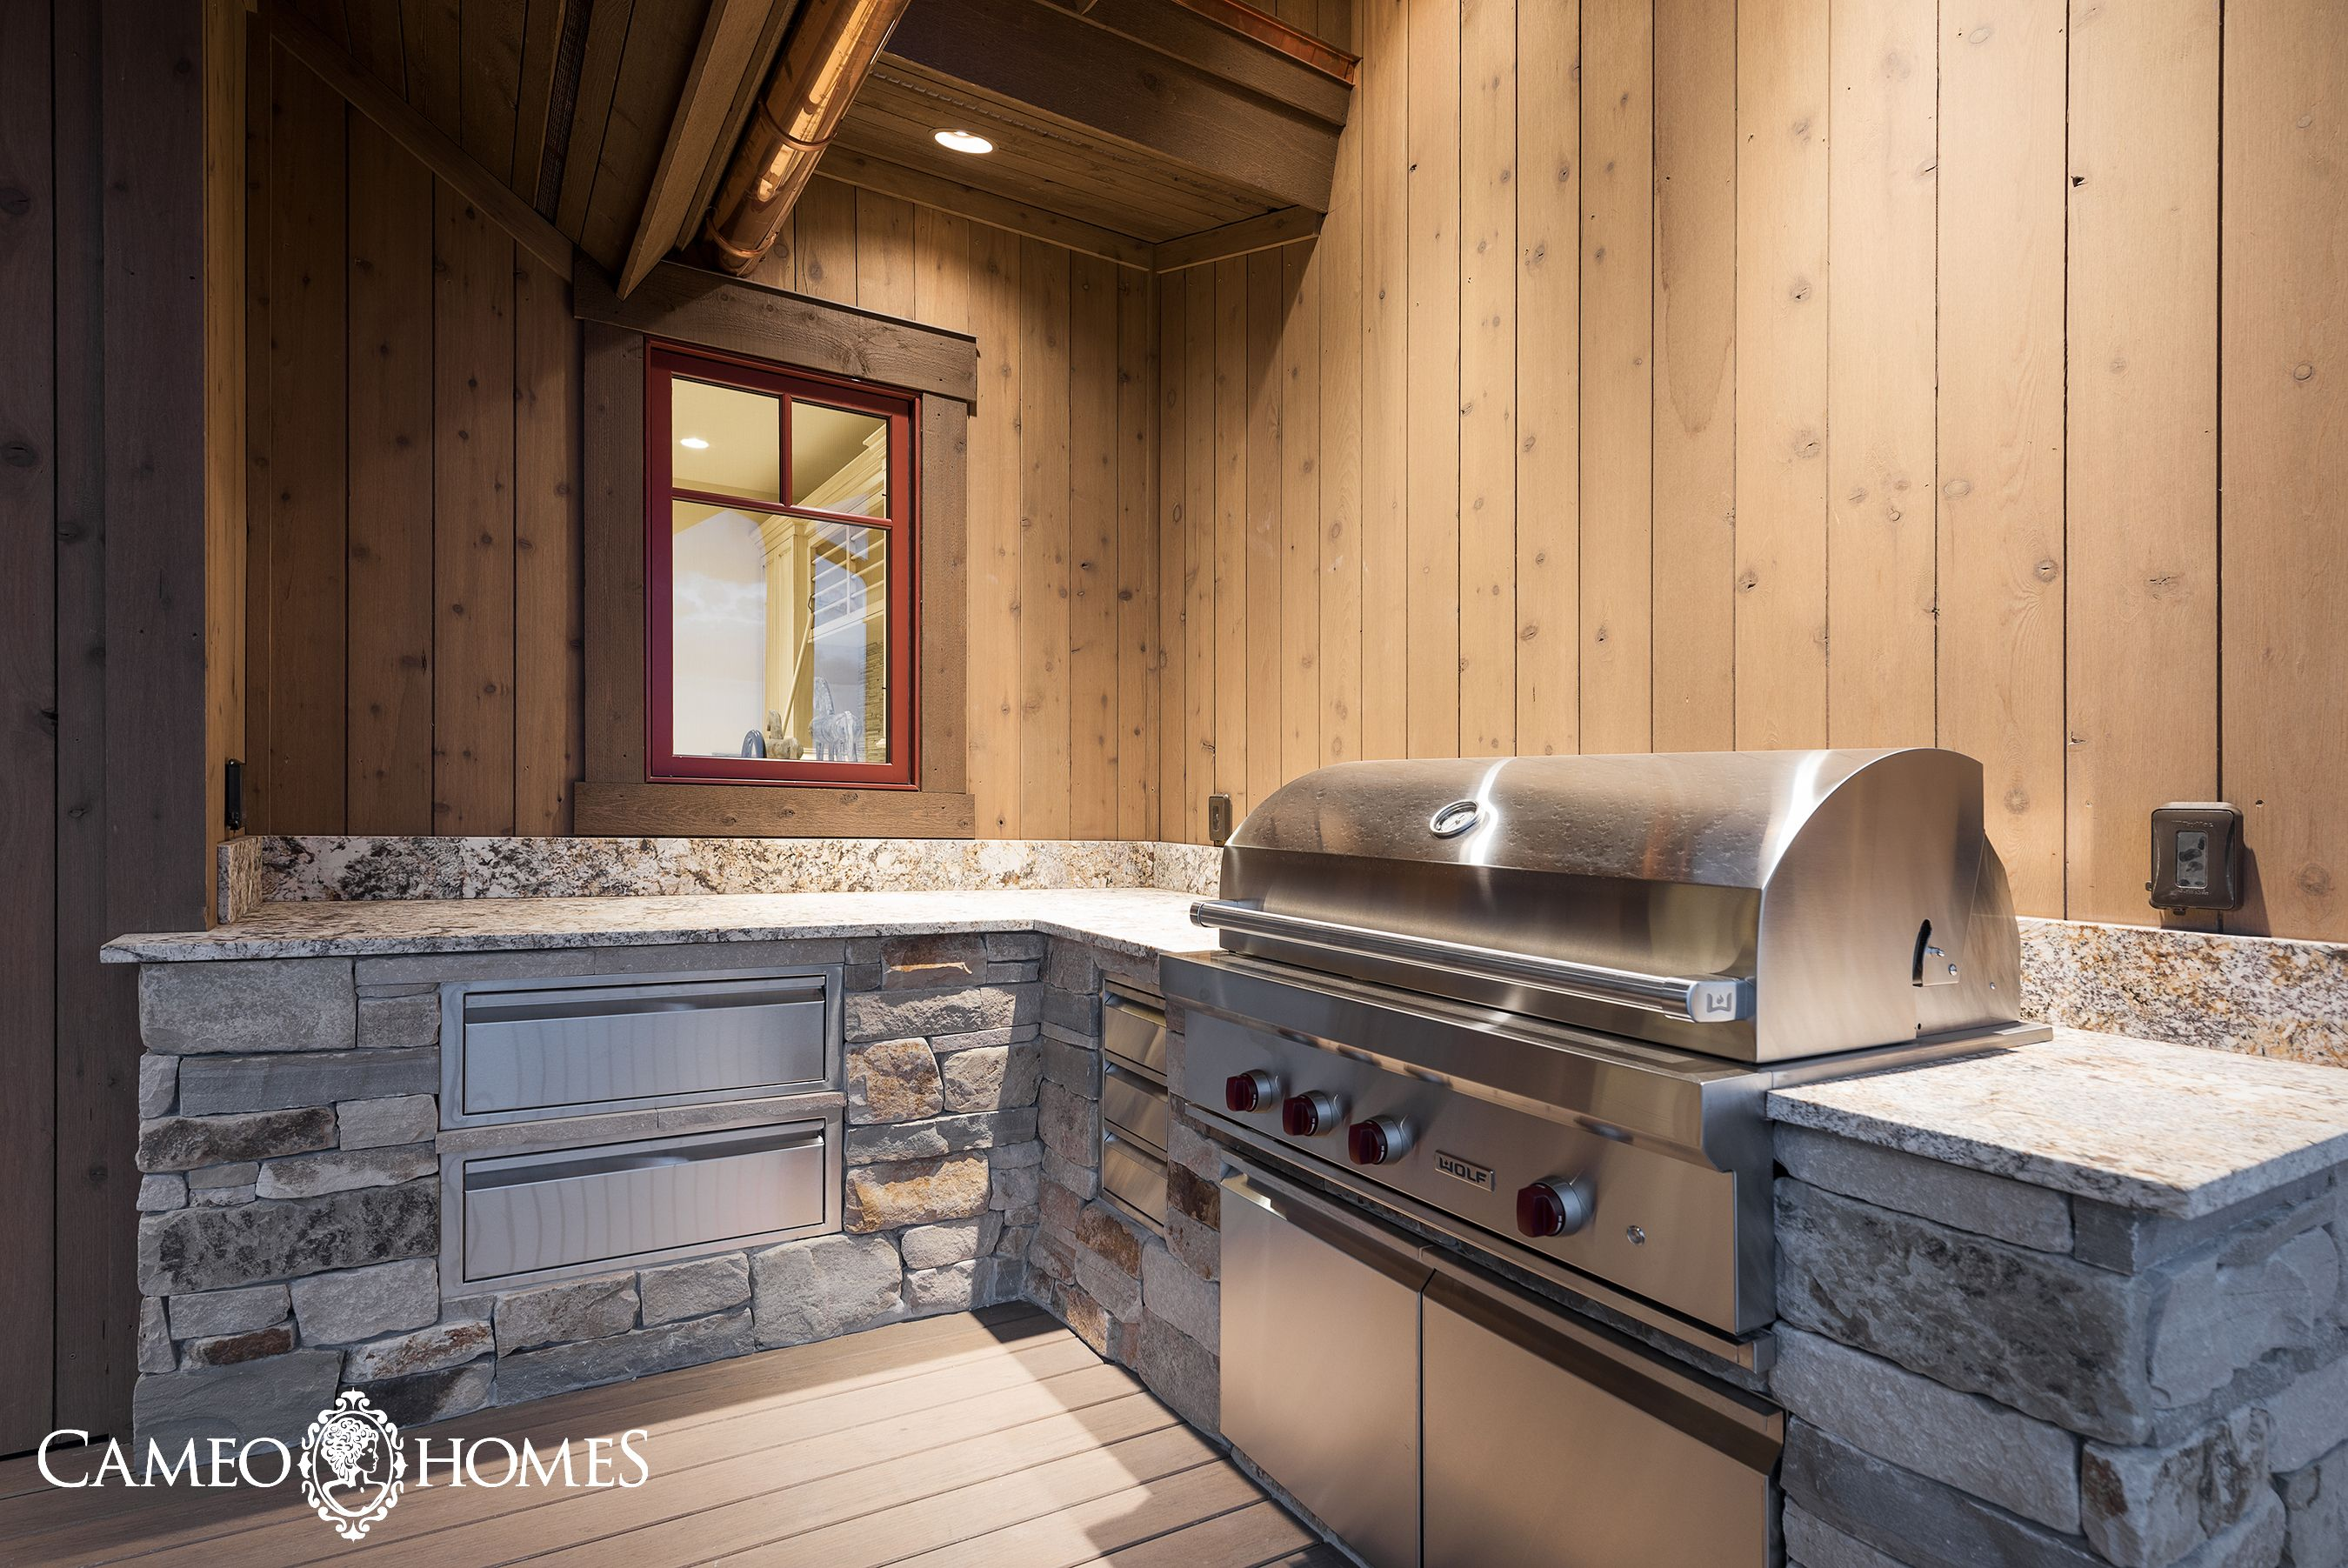 Outdoor Kitchen Featuring This Bbq And Warming Drawer From Sub Zero Wolf Outdoor Kitchen Utah Luxury Luxury Homes